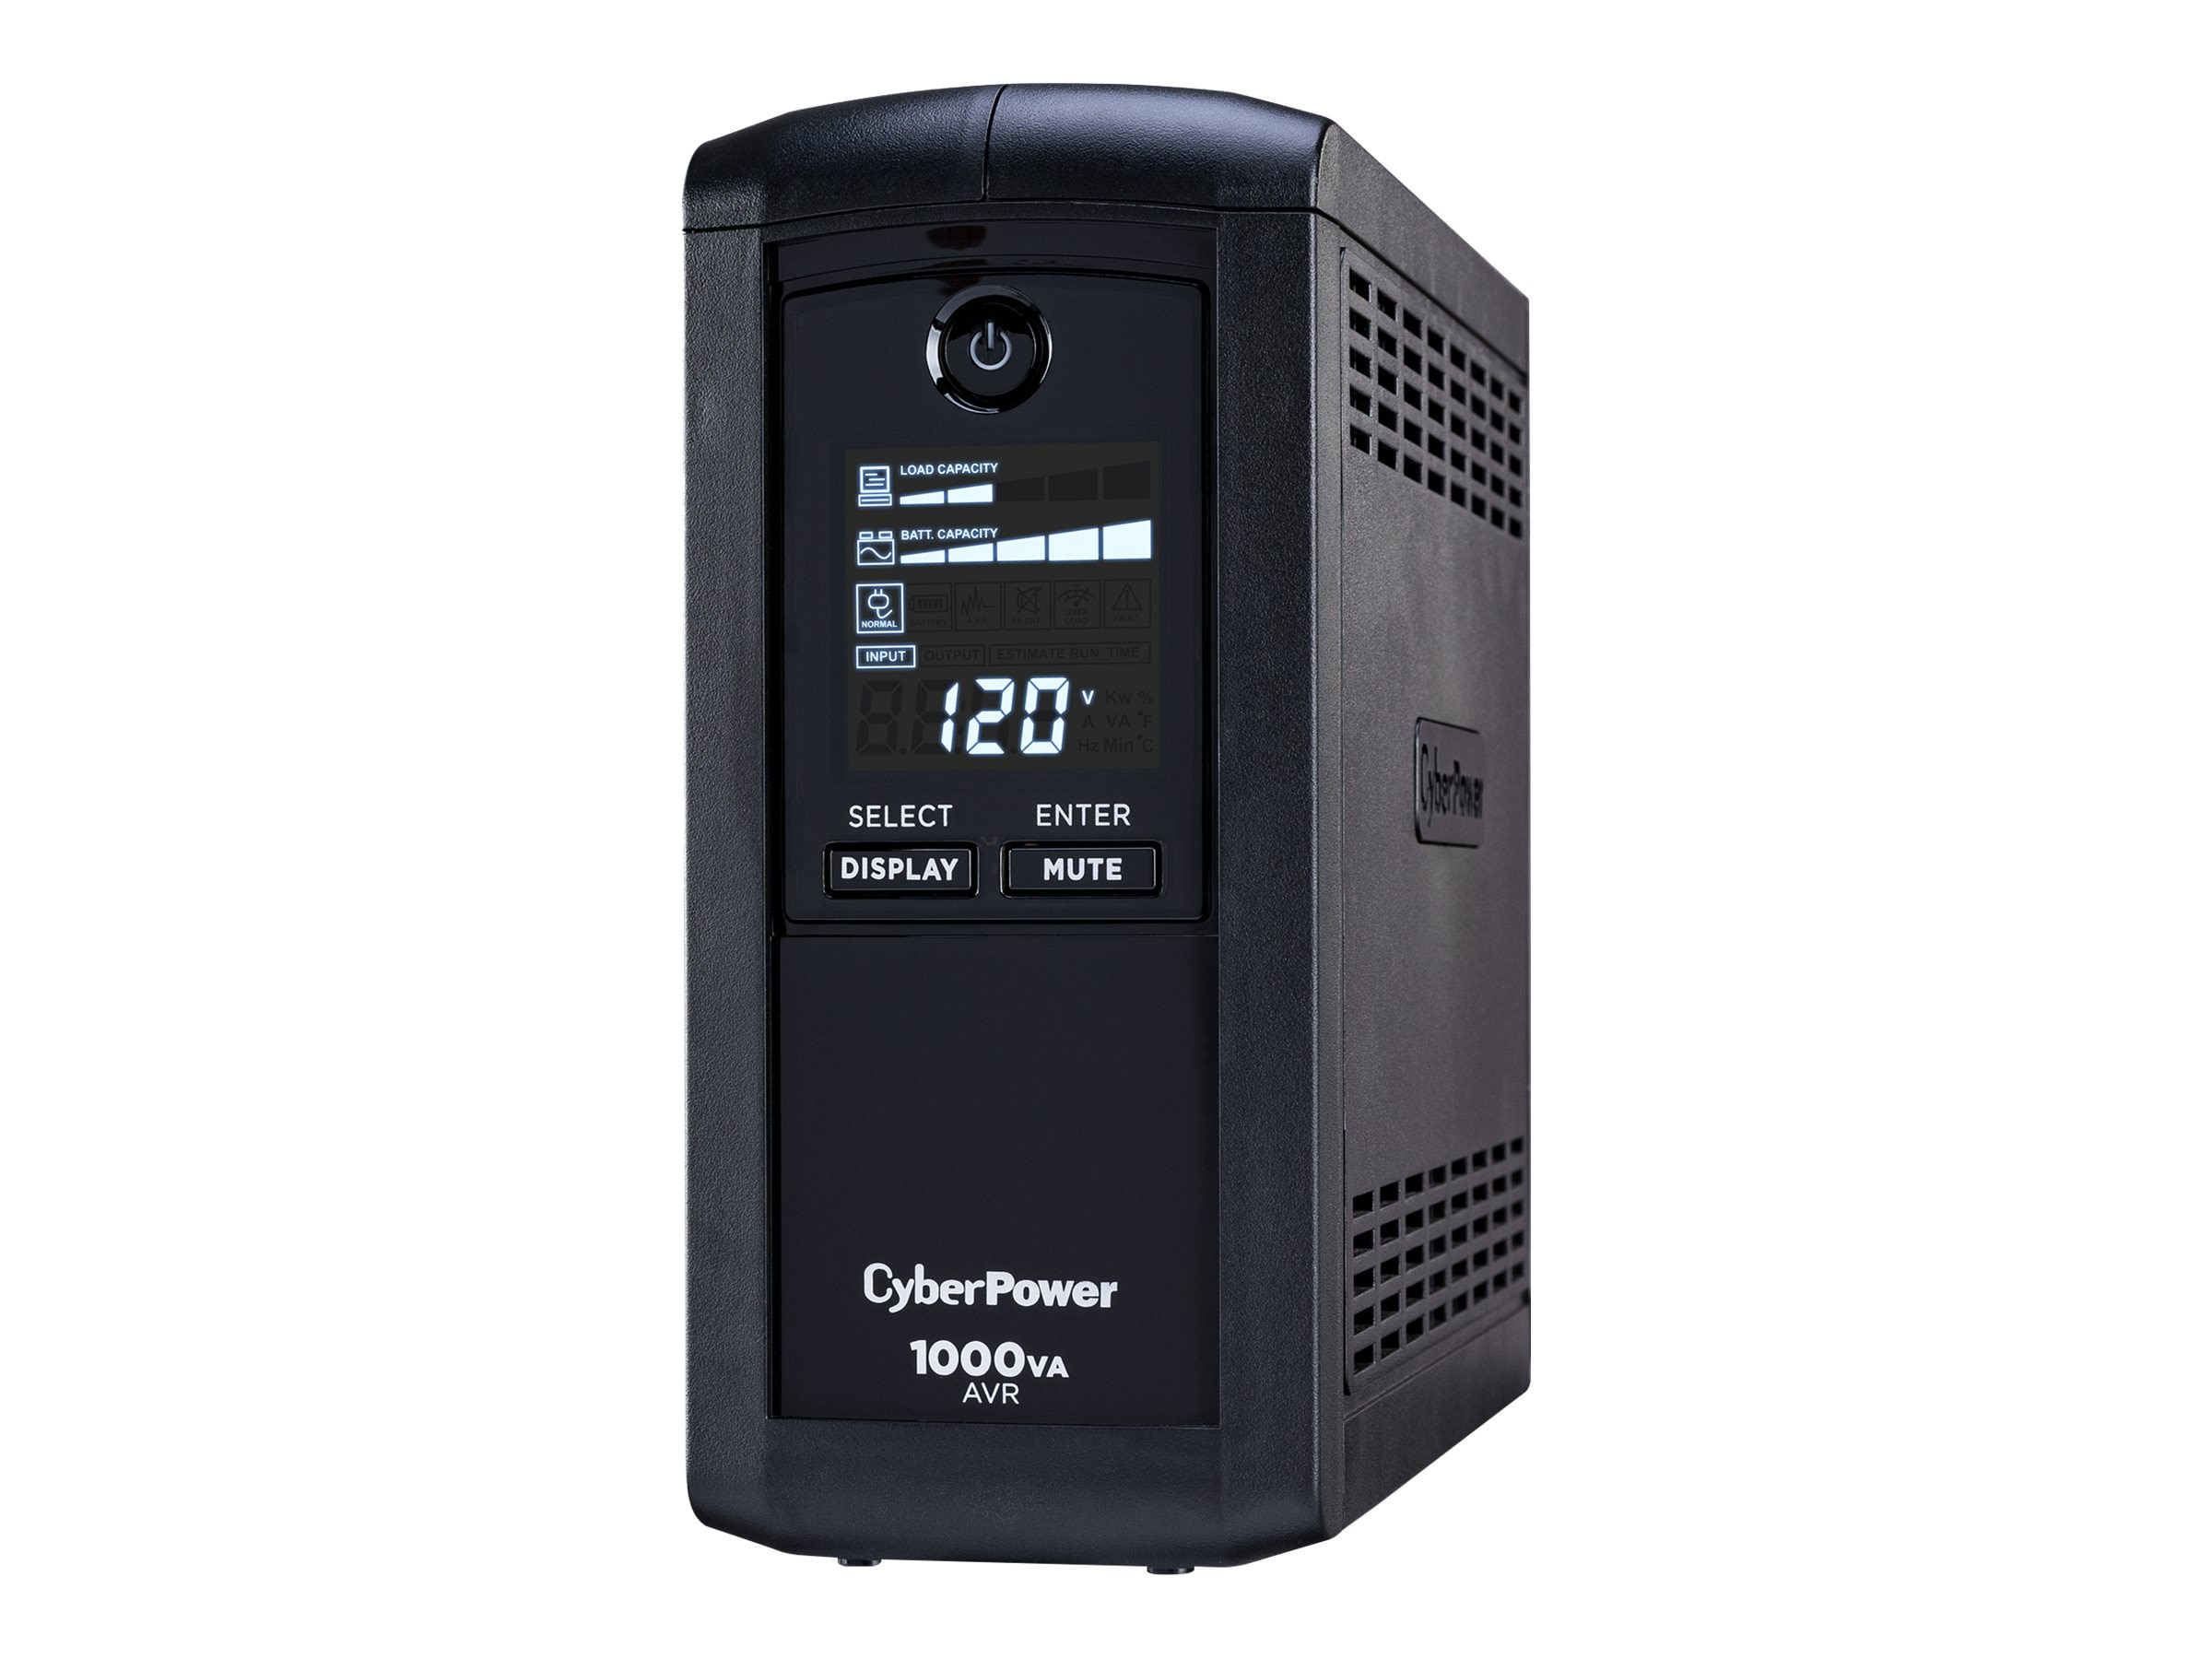 CyberPower 1000VA 600W AVR (9) Outlet RJ-11 RJ-45 Coax Tower LCD Display